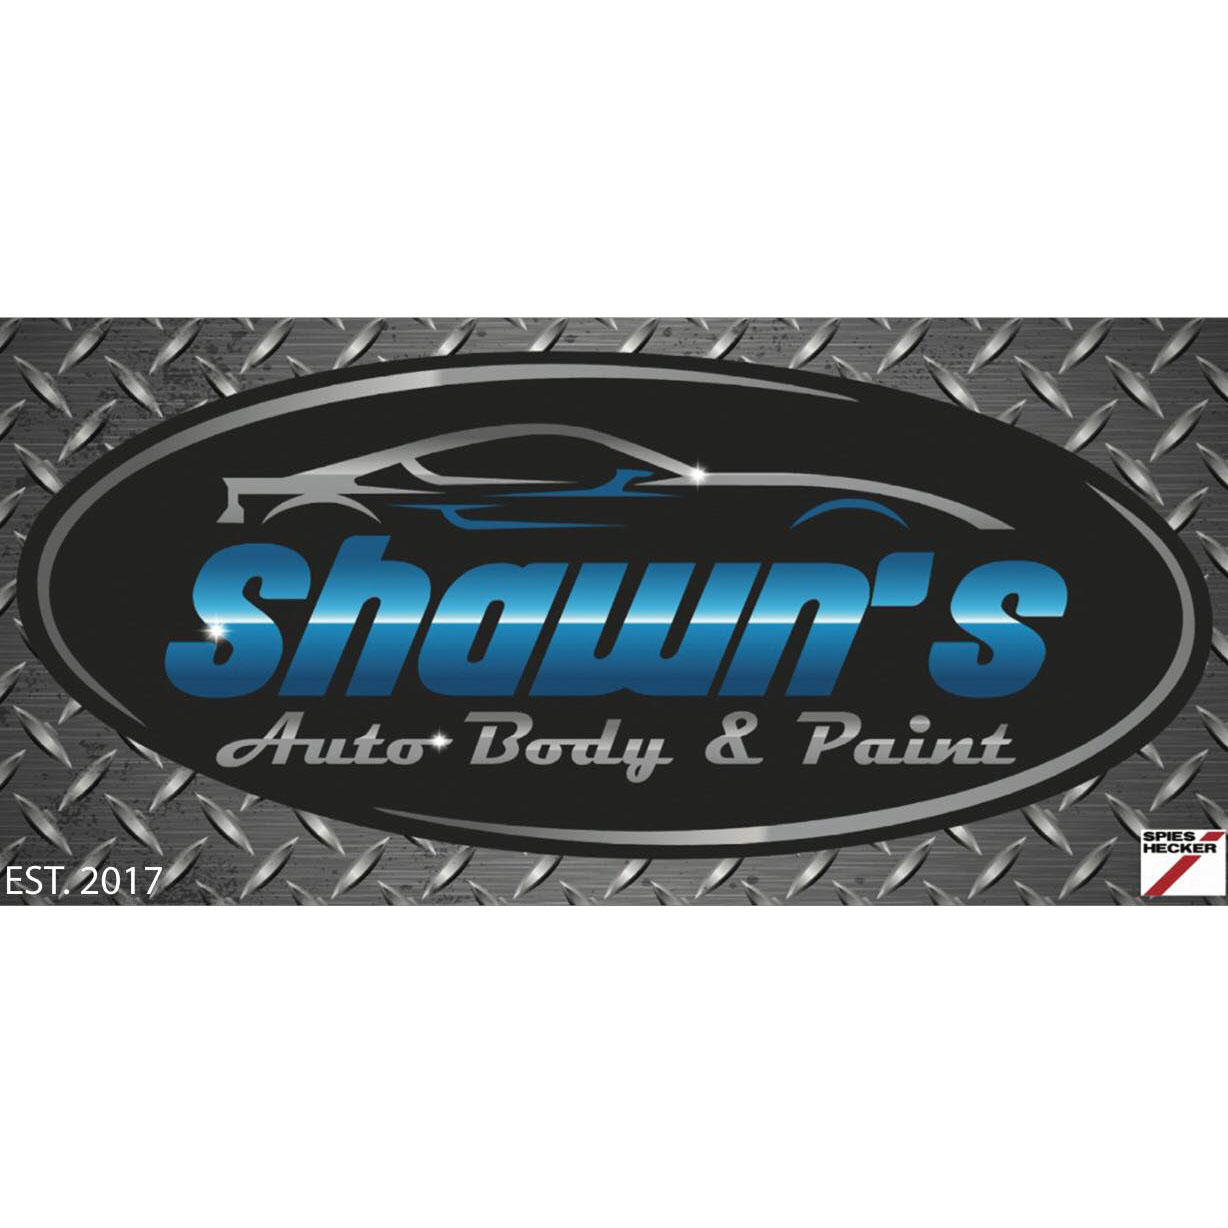 Shawn's Auto Body and Paint, LLC - Rockport, IN - Auto Body Repair & Painting